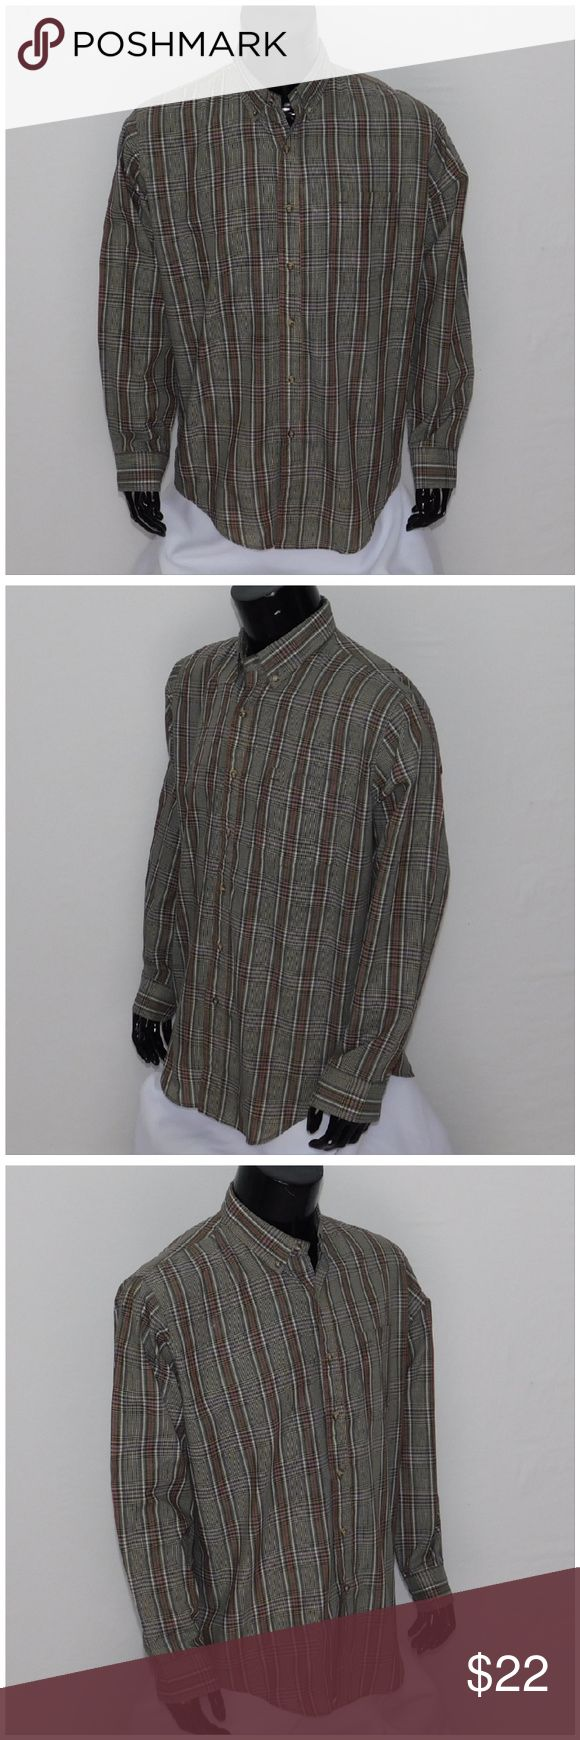 """Offers of 40% Less on BUNDLES Always Accepted! *MEN* MCGREGOR Classic, size Large See Measurements, button collar, double button adjustable cuffs, light weight, machine washable, 65% cotton, 35% polyester, approximate measurements: 28 - 32"""" length, 24"""" chest laying flat, 19"""" shoulder width, 25"""" sleeves. ADD to a BUNDLE! Offers of 40% Less on BUNDLES Always Accepted! McGregor Shirts Dress Shirts"""